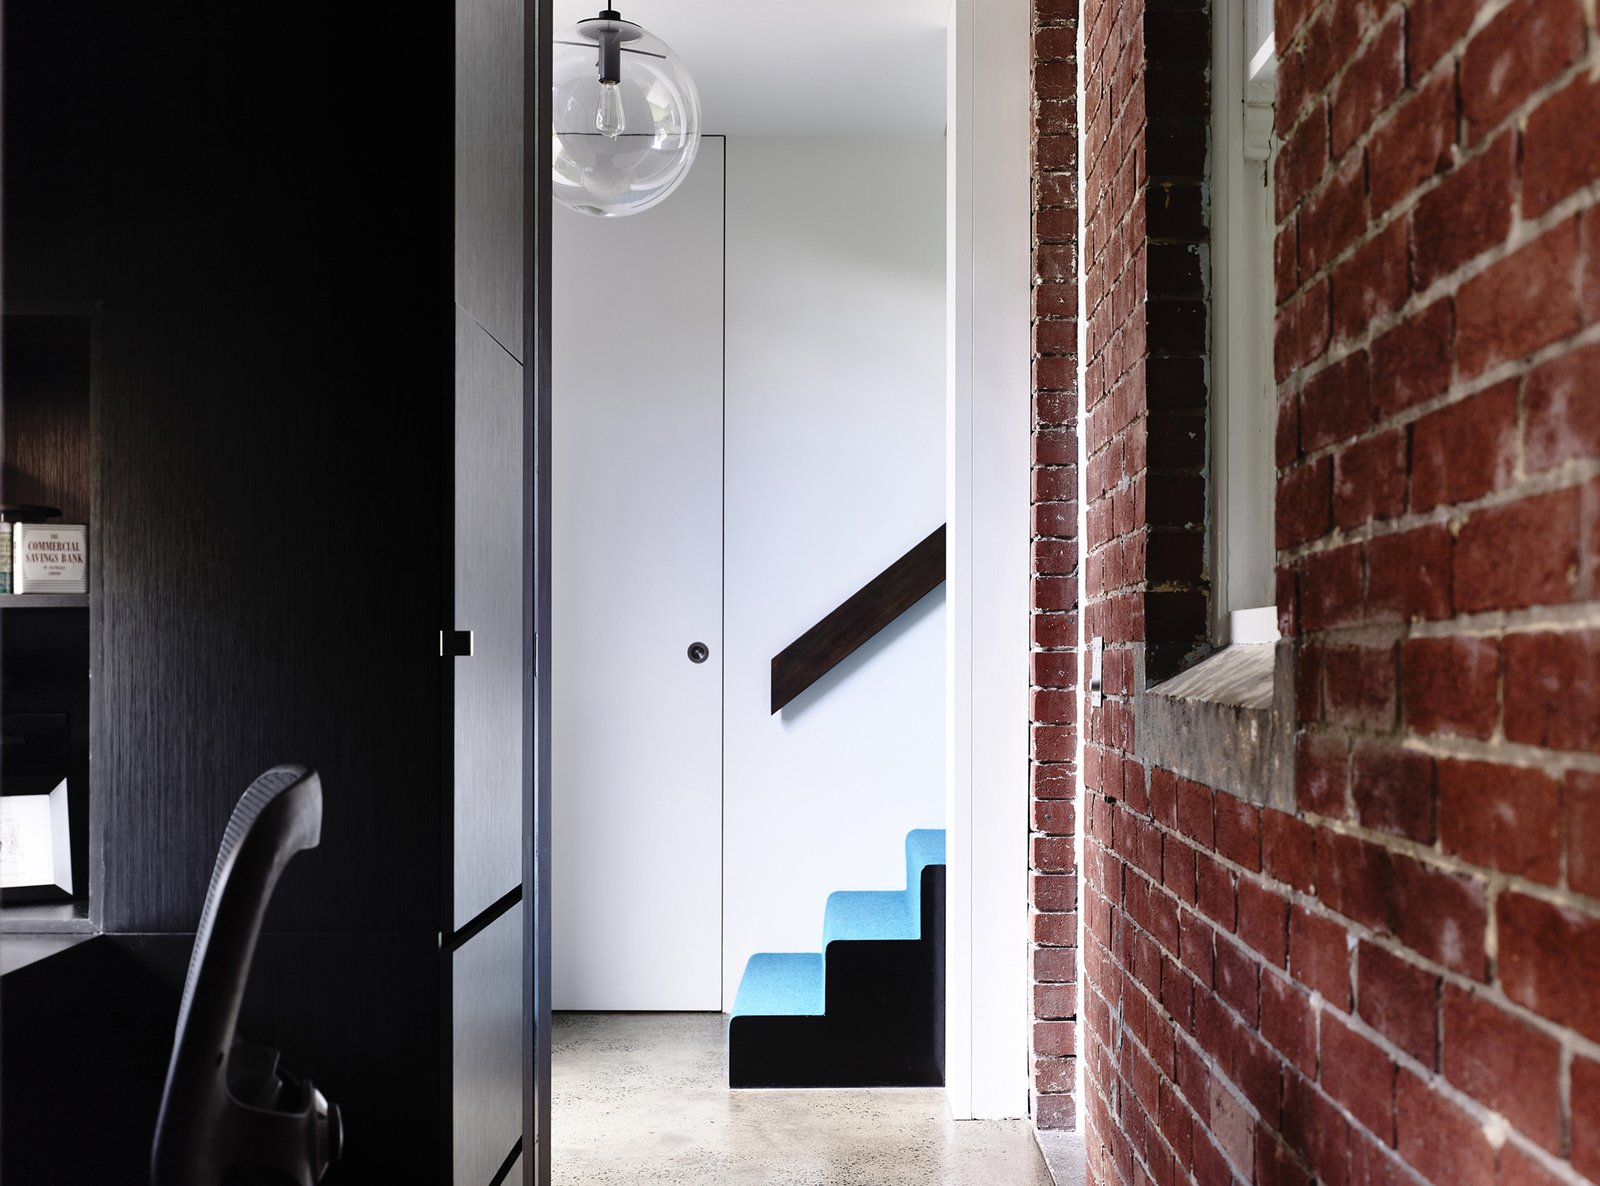 Staircase  Photo 5 of 10 in Old Meets New in This Modern Extension to an Edwardian House in Melbourne